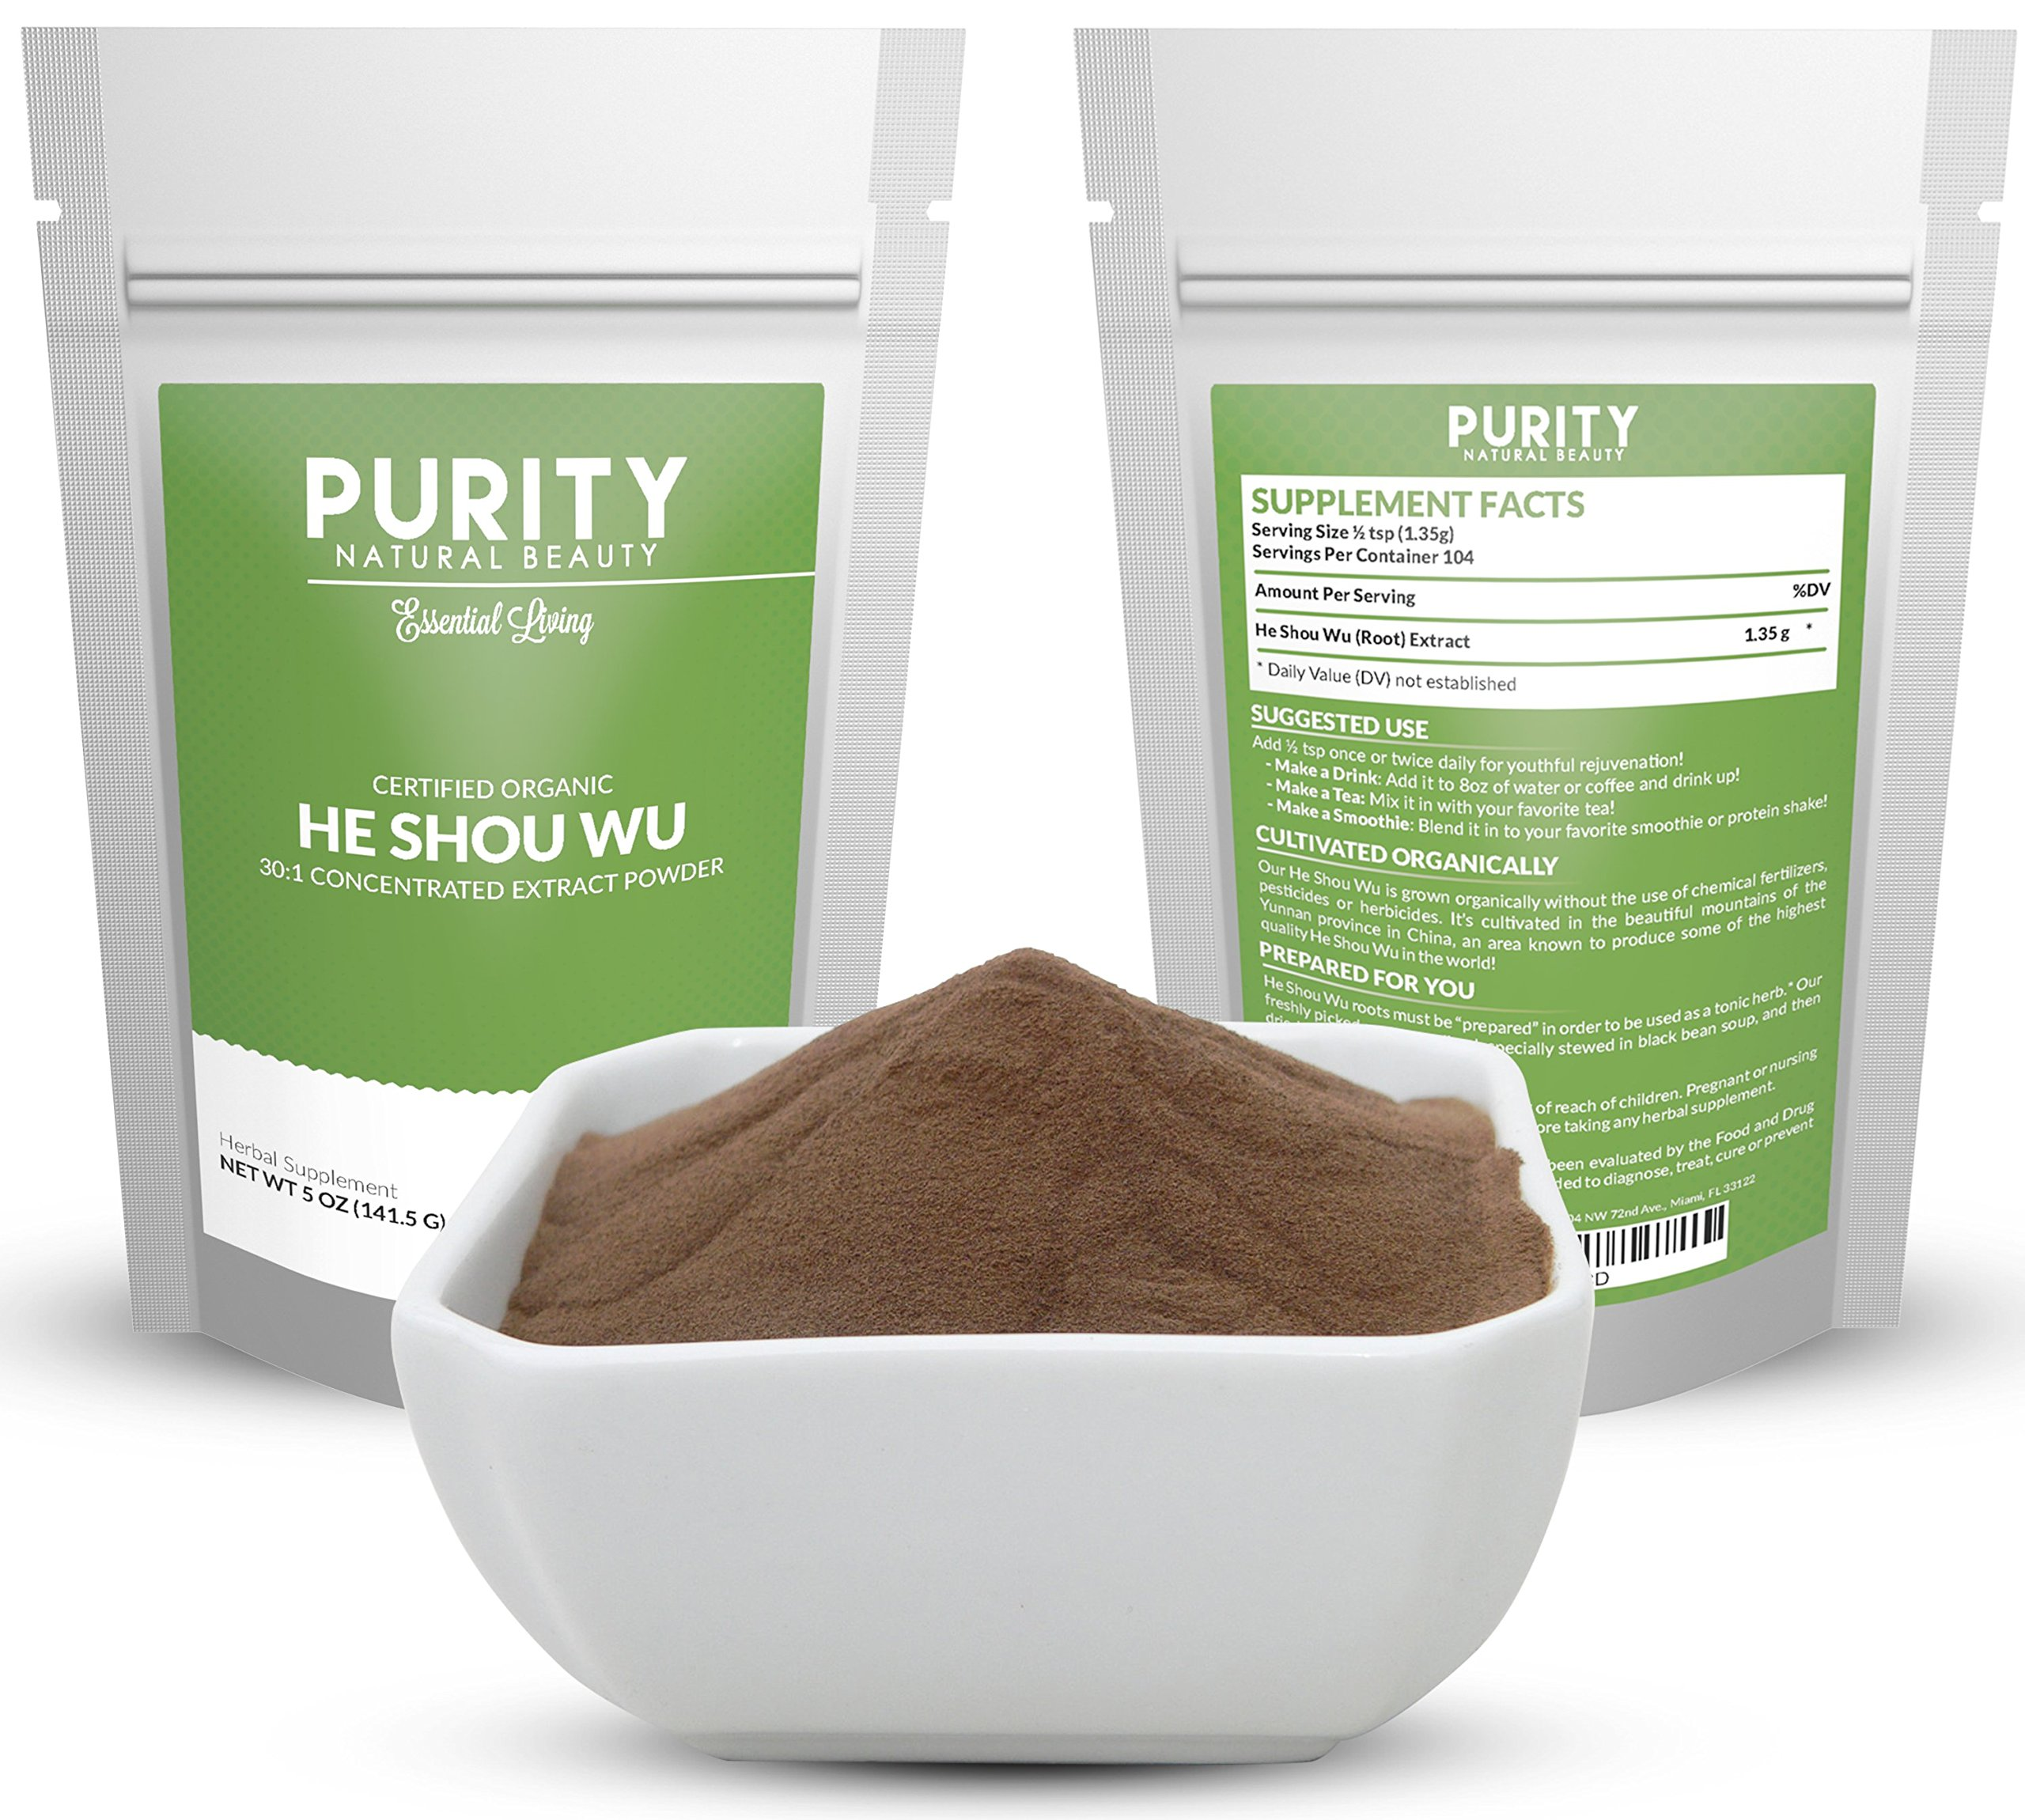 Certified Organic He Shou Wu - Large 5oz Bag, 30:1 Potency Fo Ti for Maximum Effectiveness, Restore Hair Color, Boost Energy, Sleep Better, Pleasantly Mild Taste, Dissolves Easily in Coffee or Tea